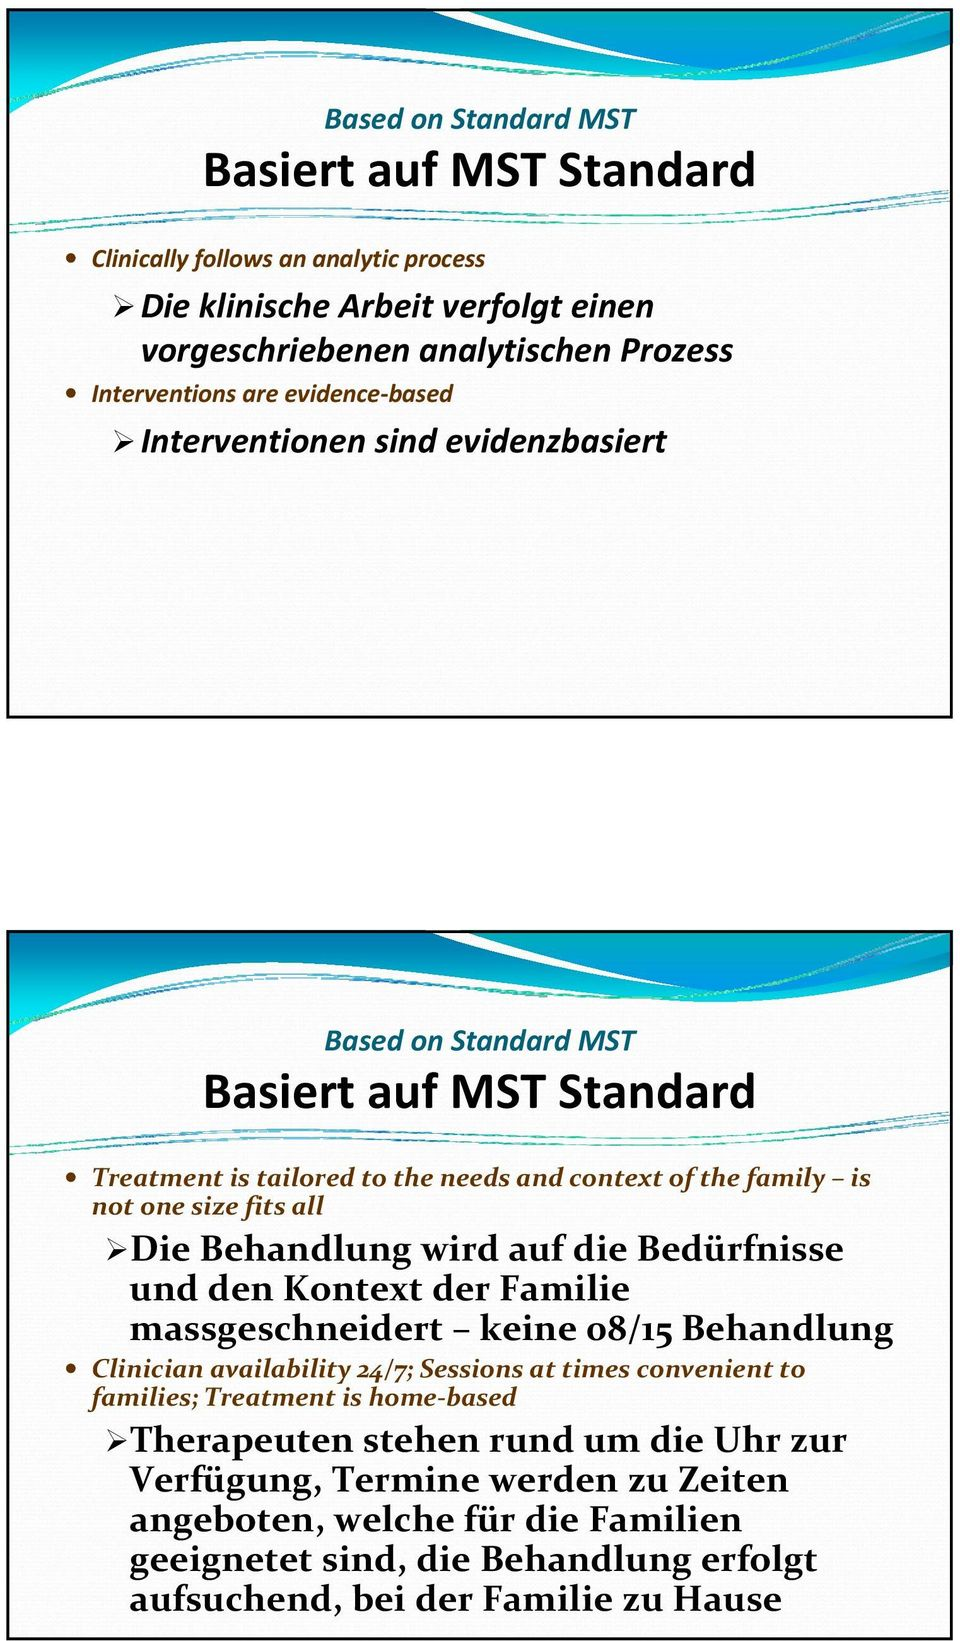 Behandlung wird auf die Bedürfnisse und den Kontext der Familie massgeschneidert keine 08/15 Behandlung Clinician availability 24/7; Sessions at times convenient to families; Treatment is